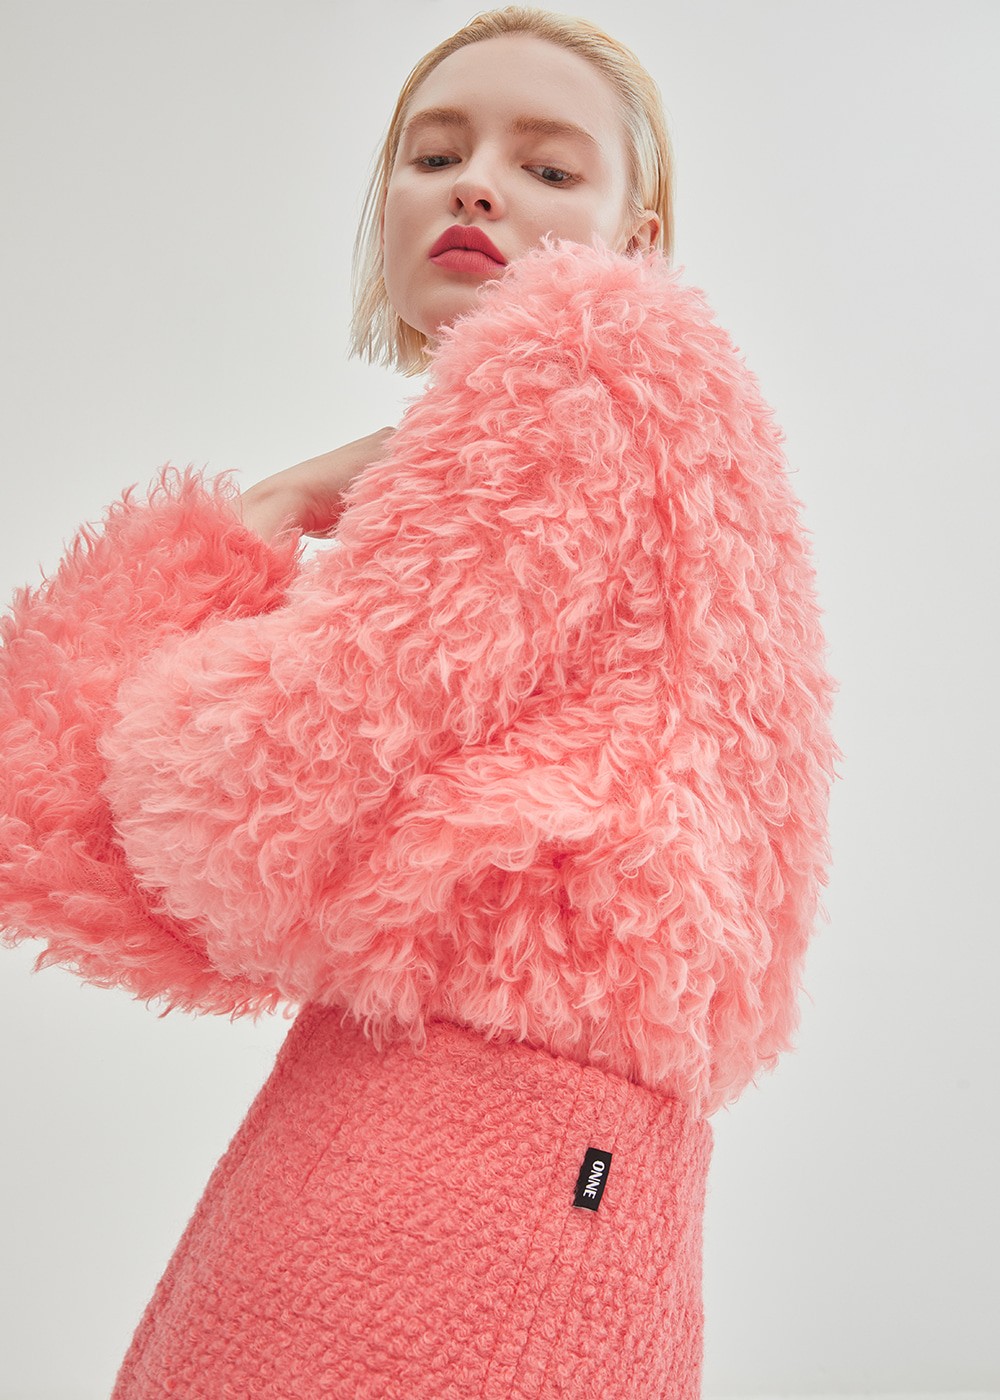 Curly Fur Knit Top - Pink